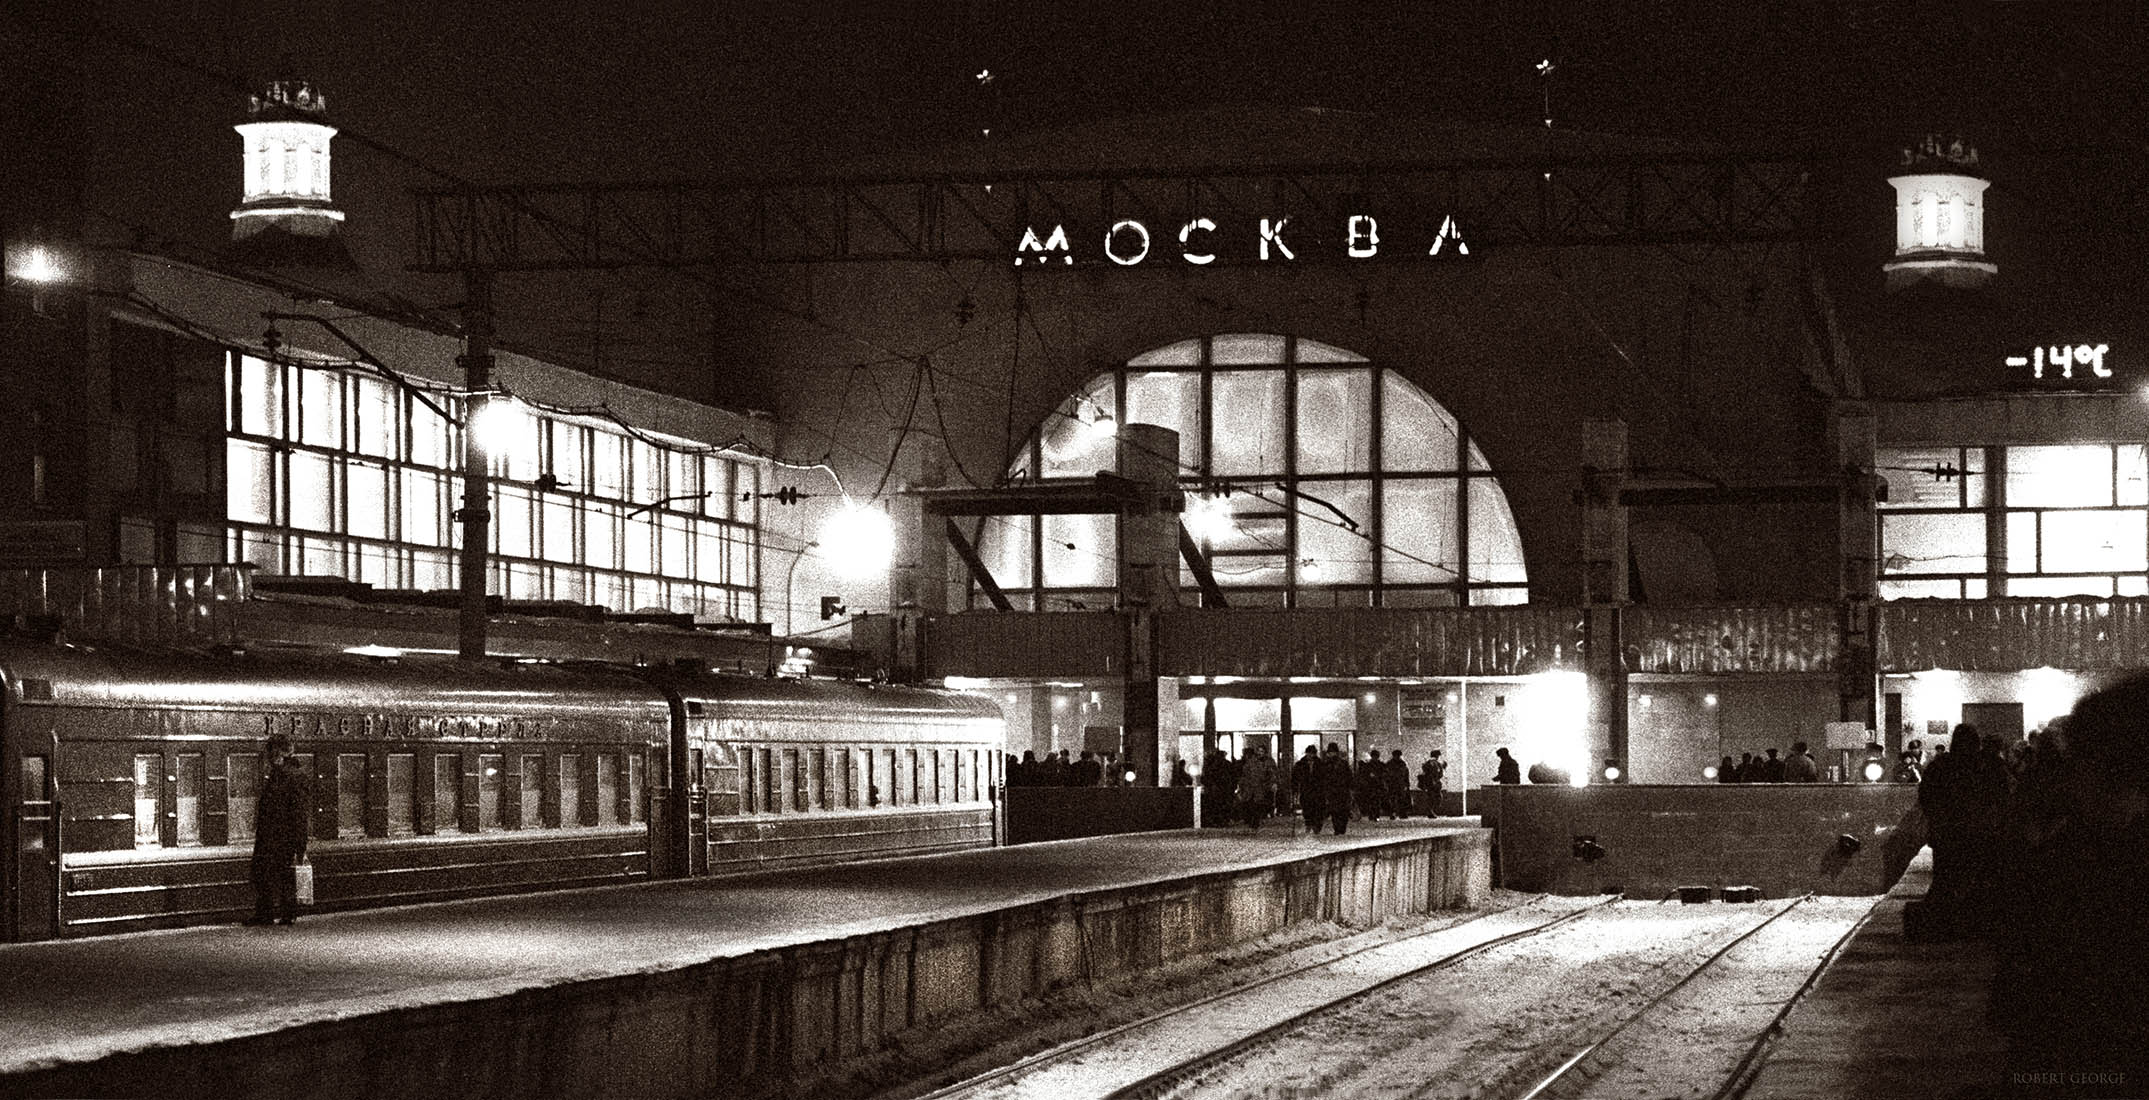 Moscow train station in winter, 1995